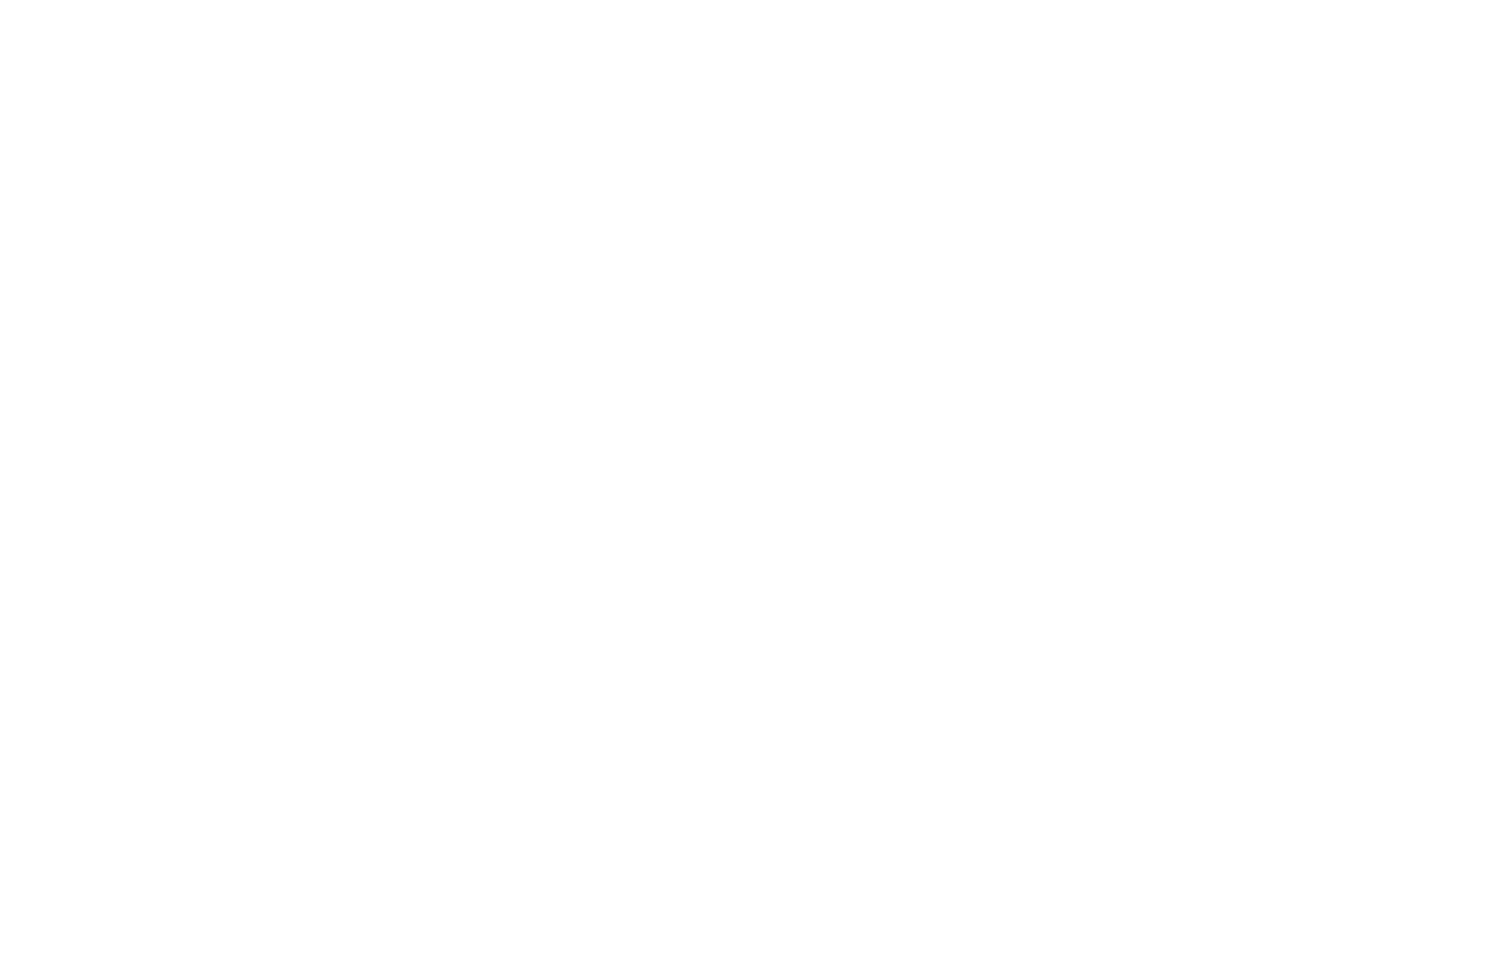 Waylz - Play the Stock Market with Friends